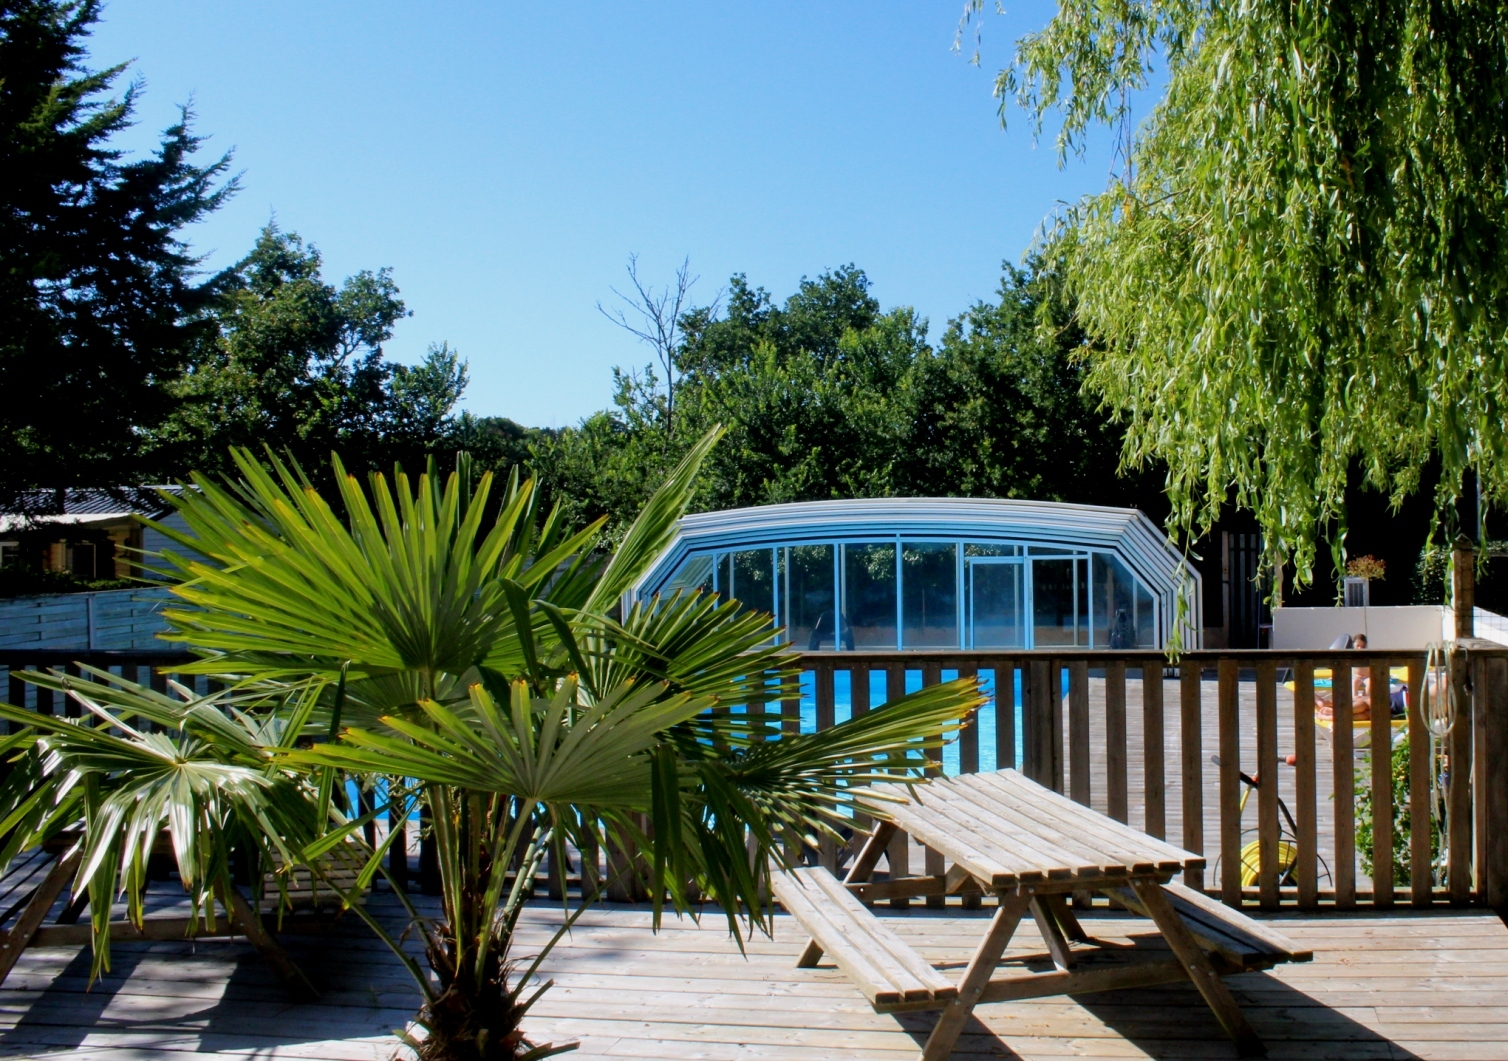 Camping Le Neptune